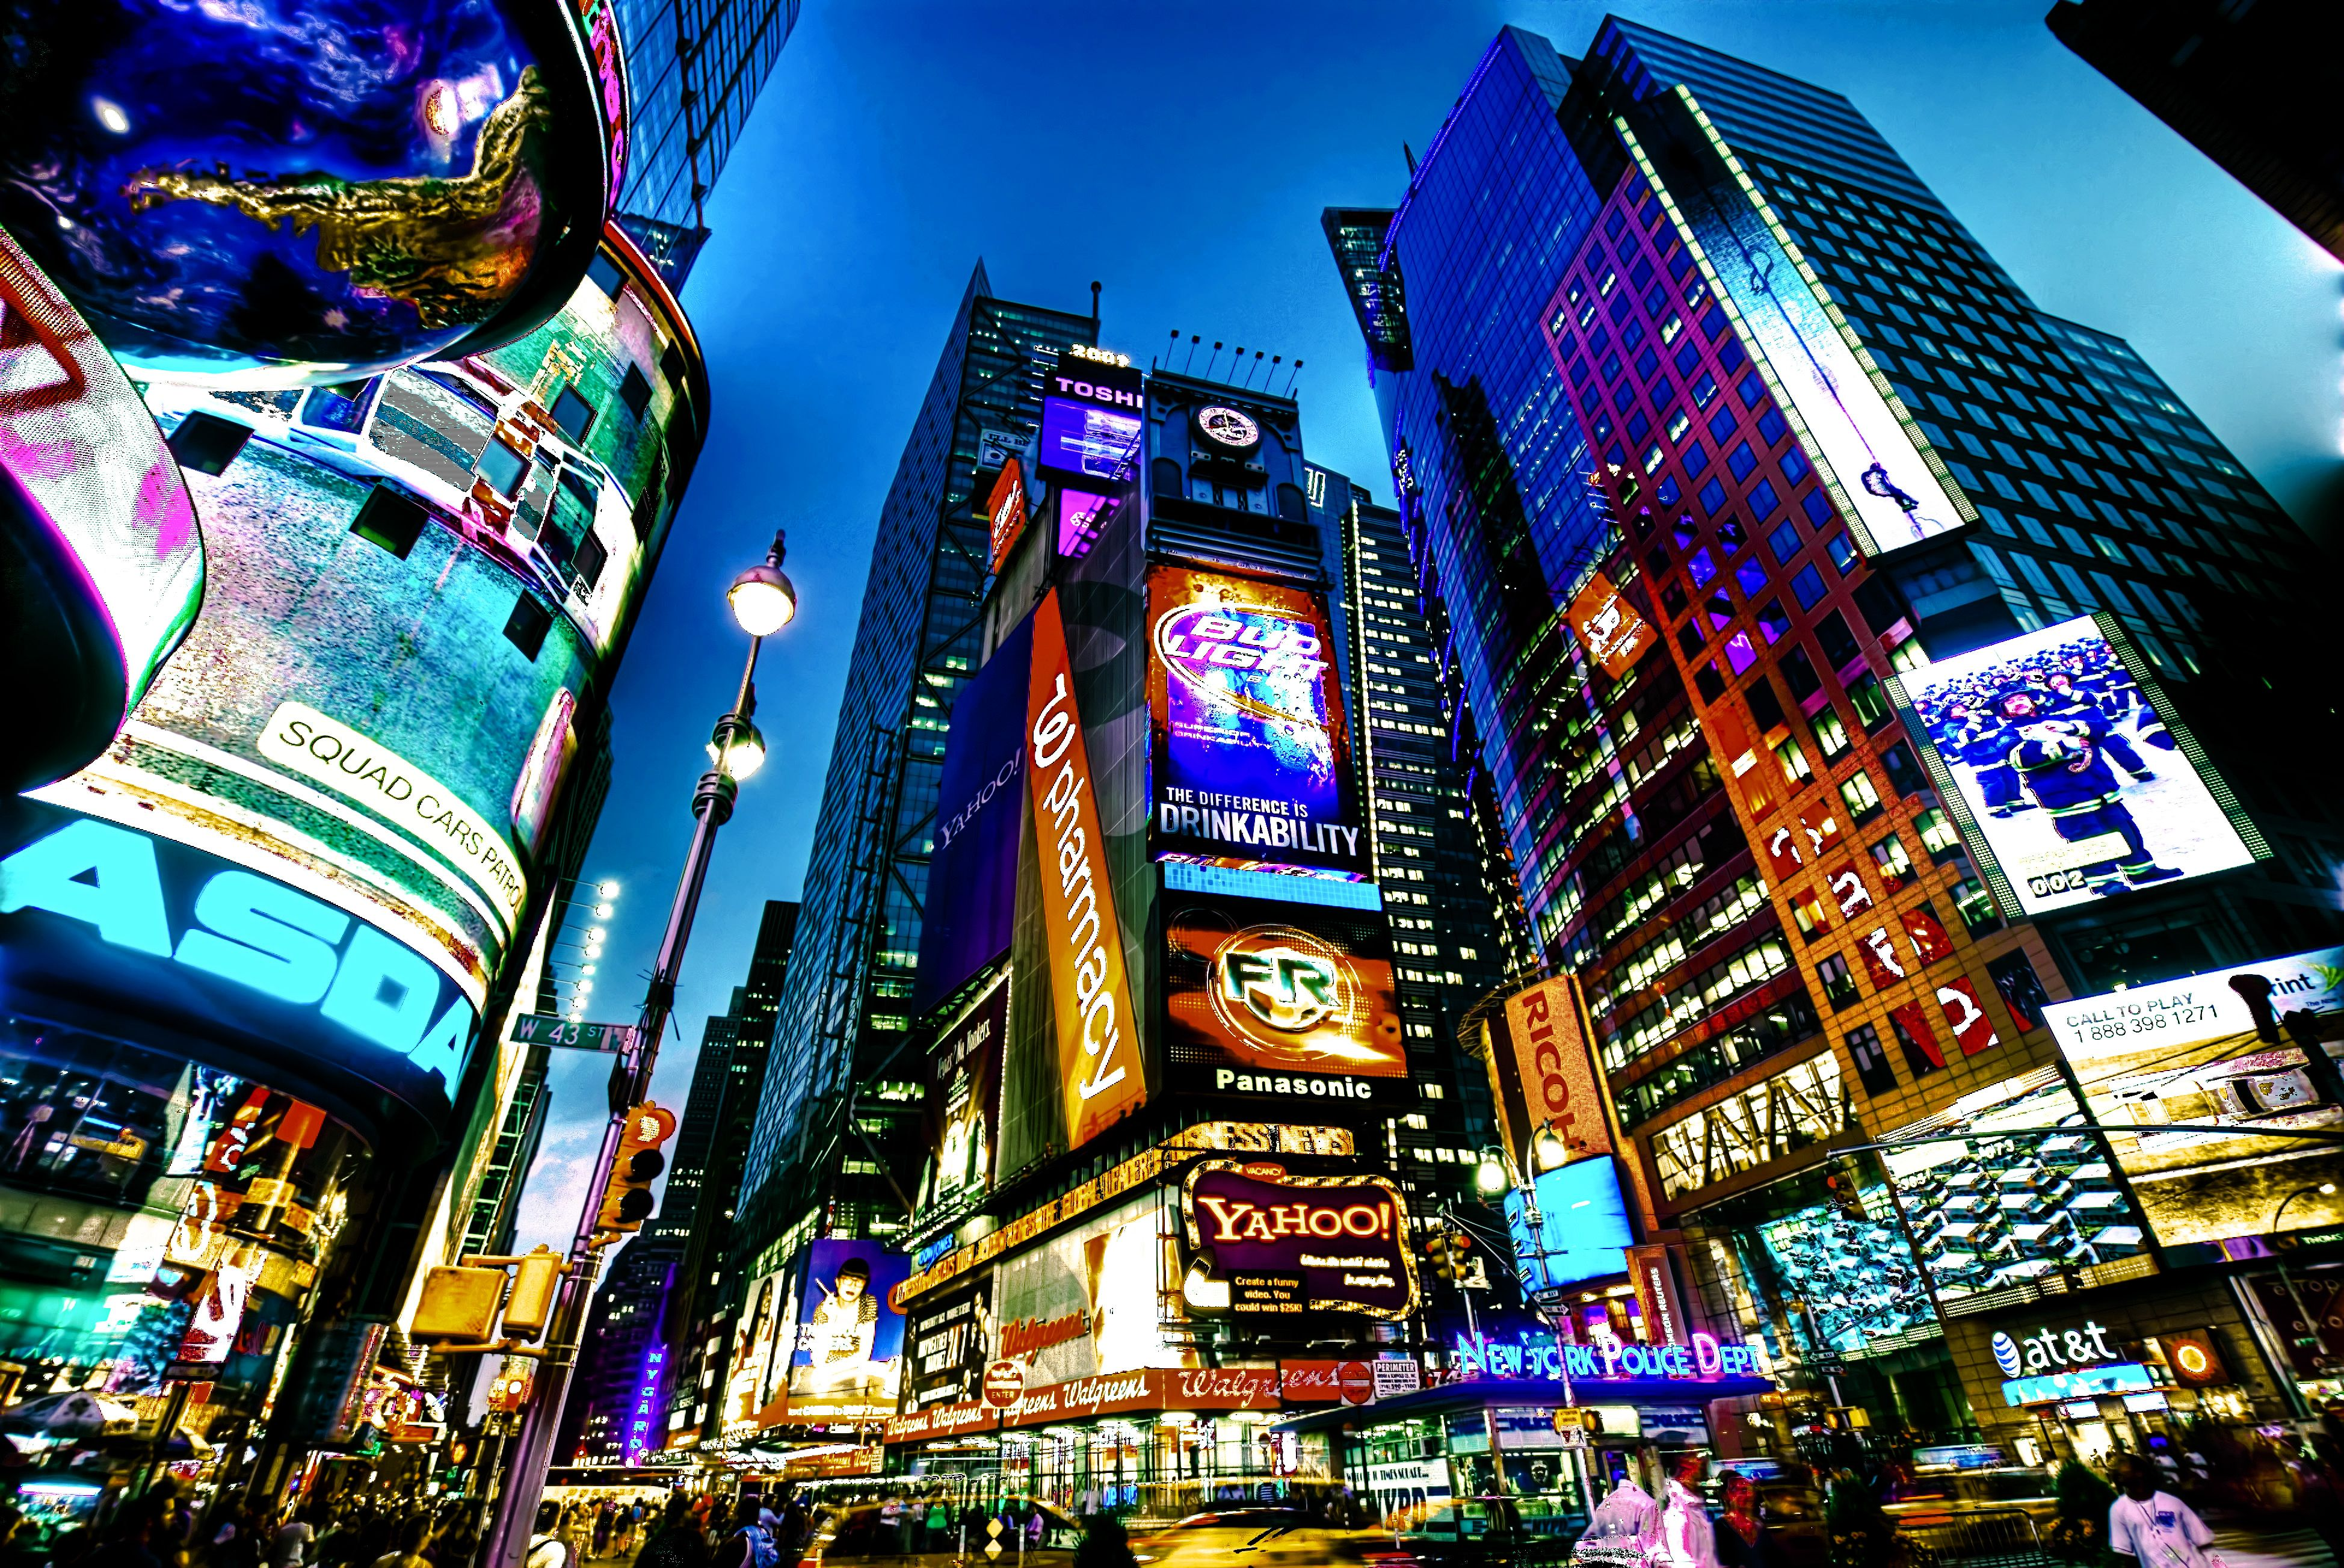 Times Square Wallpaper X Hd Wallpapers In 2019 Times Square